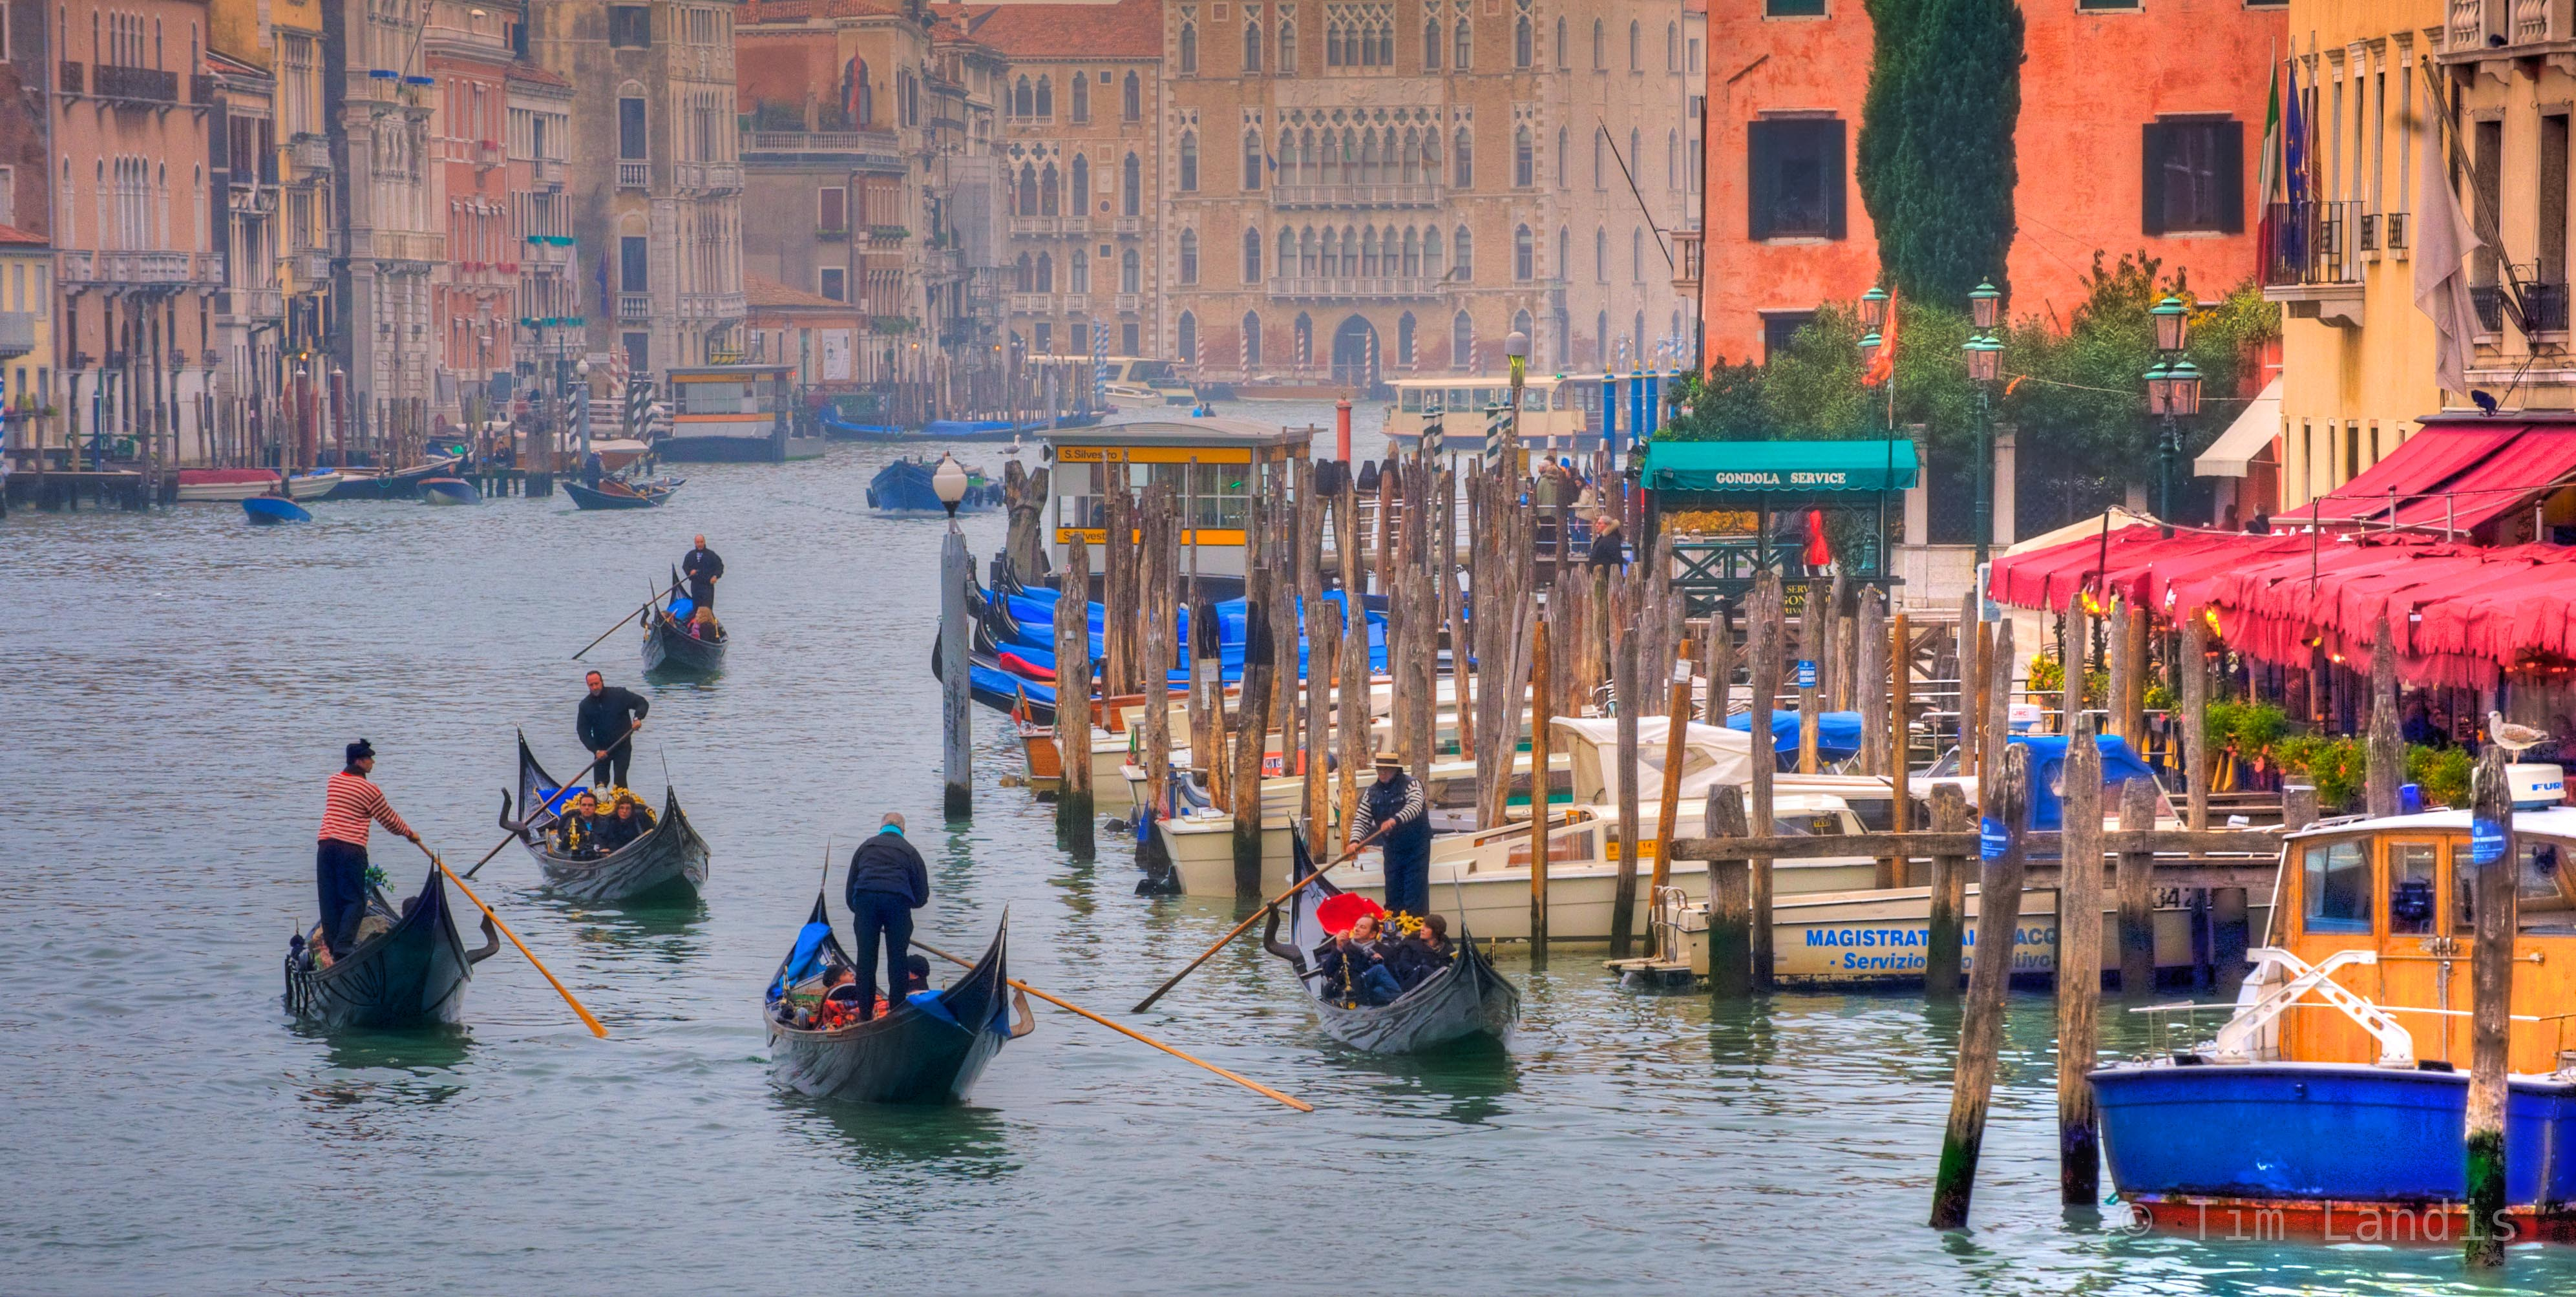 Italy, Venice, a foggy morning in venice, gondolas, the Grand Canal, view from a bridge, photo